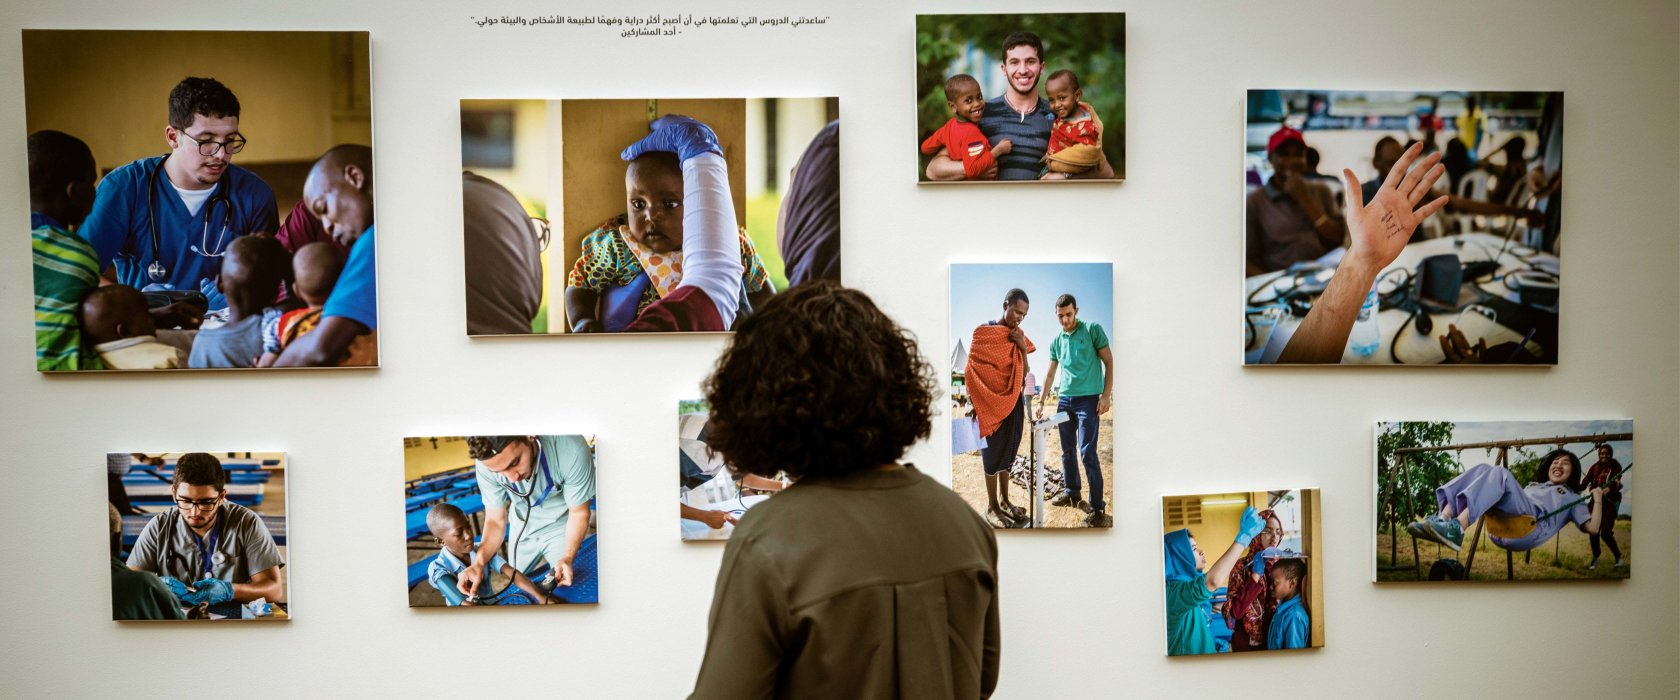 Exhibition tells the story how QF students helped one Tanzanian community